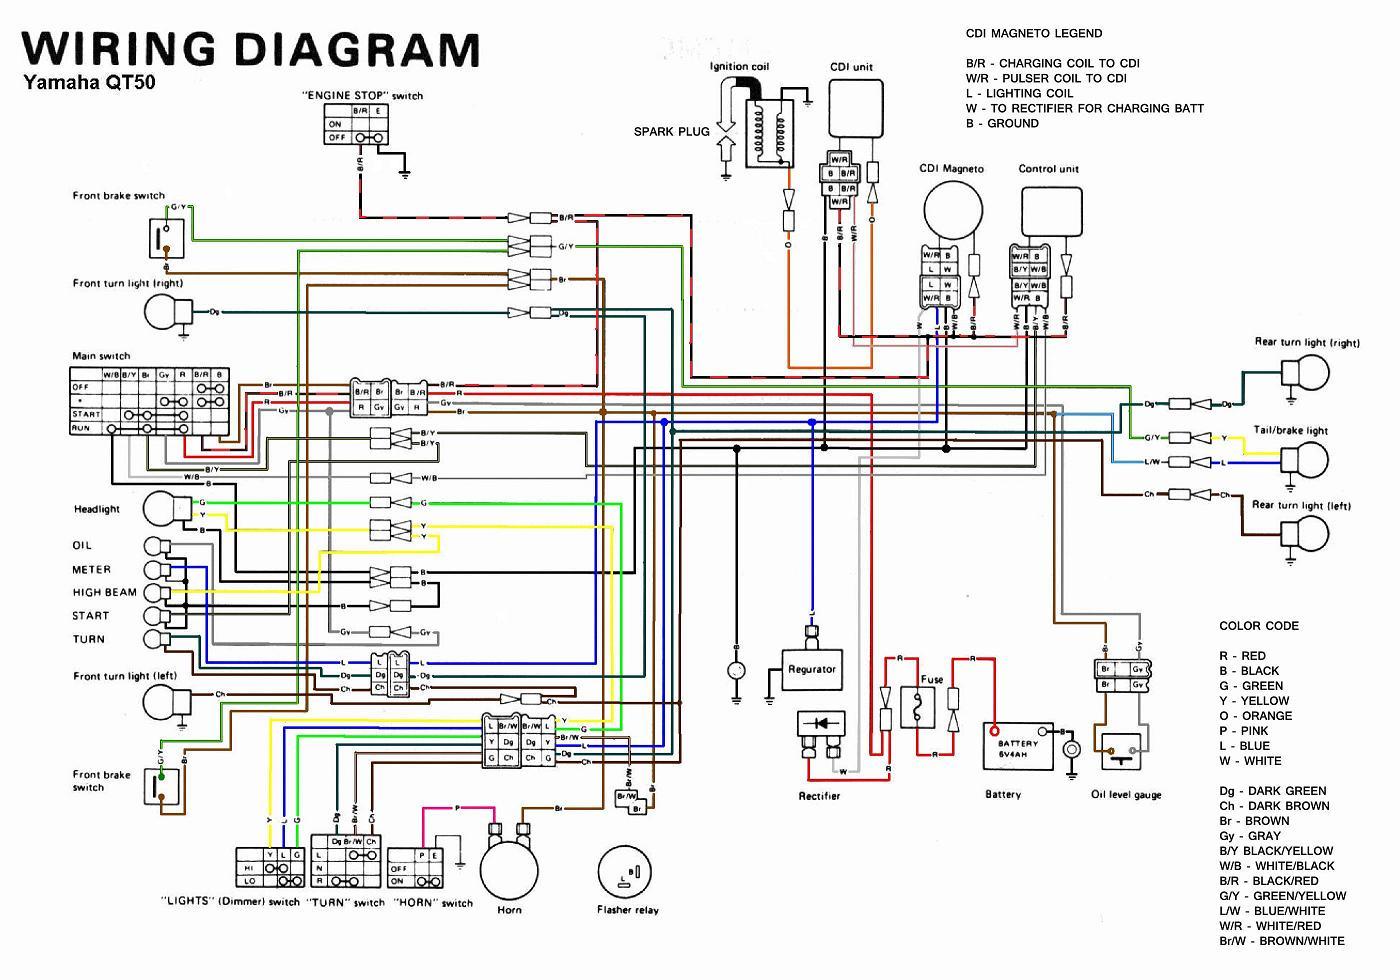 small resolution of 1978 yamaha dt 125 wiring diagram wiring library 1978 yamaha dt100 1978 yamaha dt125 wiring schematic